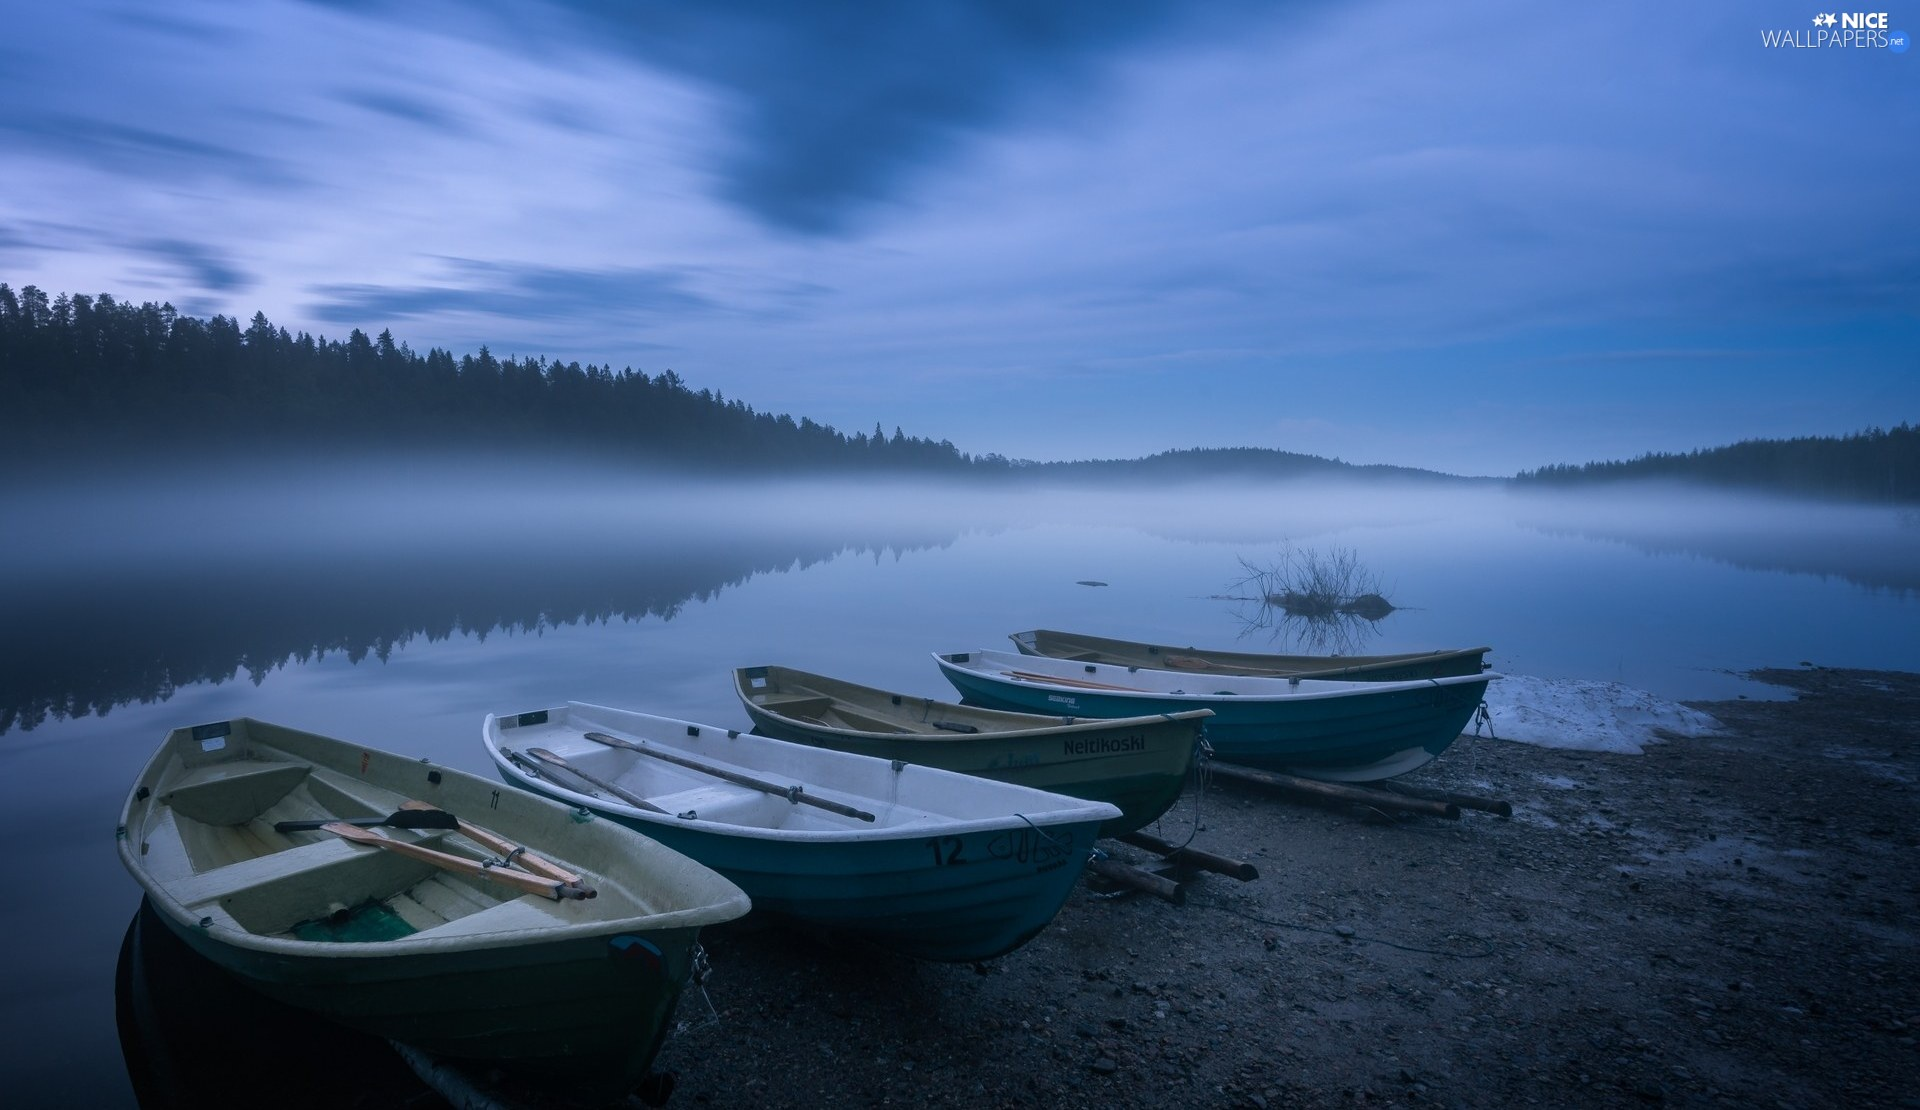 trees, viewes, lake, Fog, boats